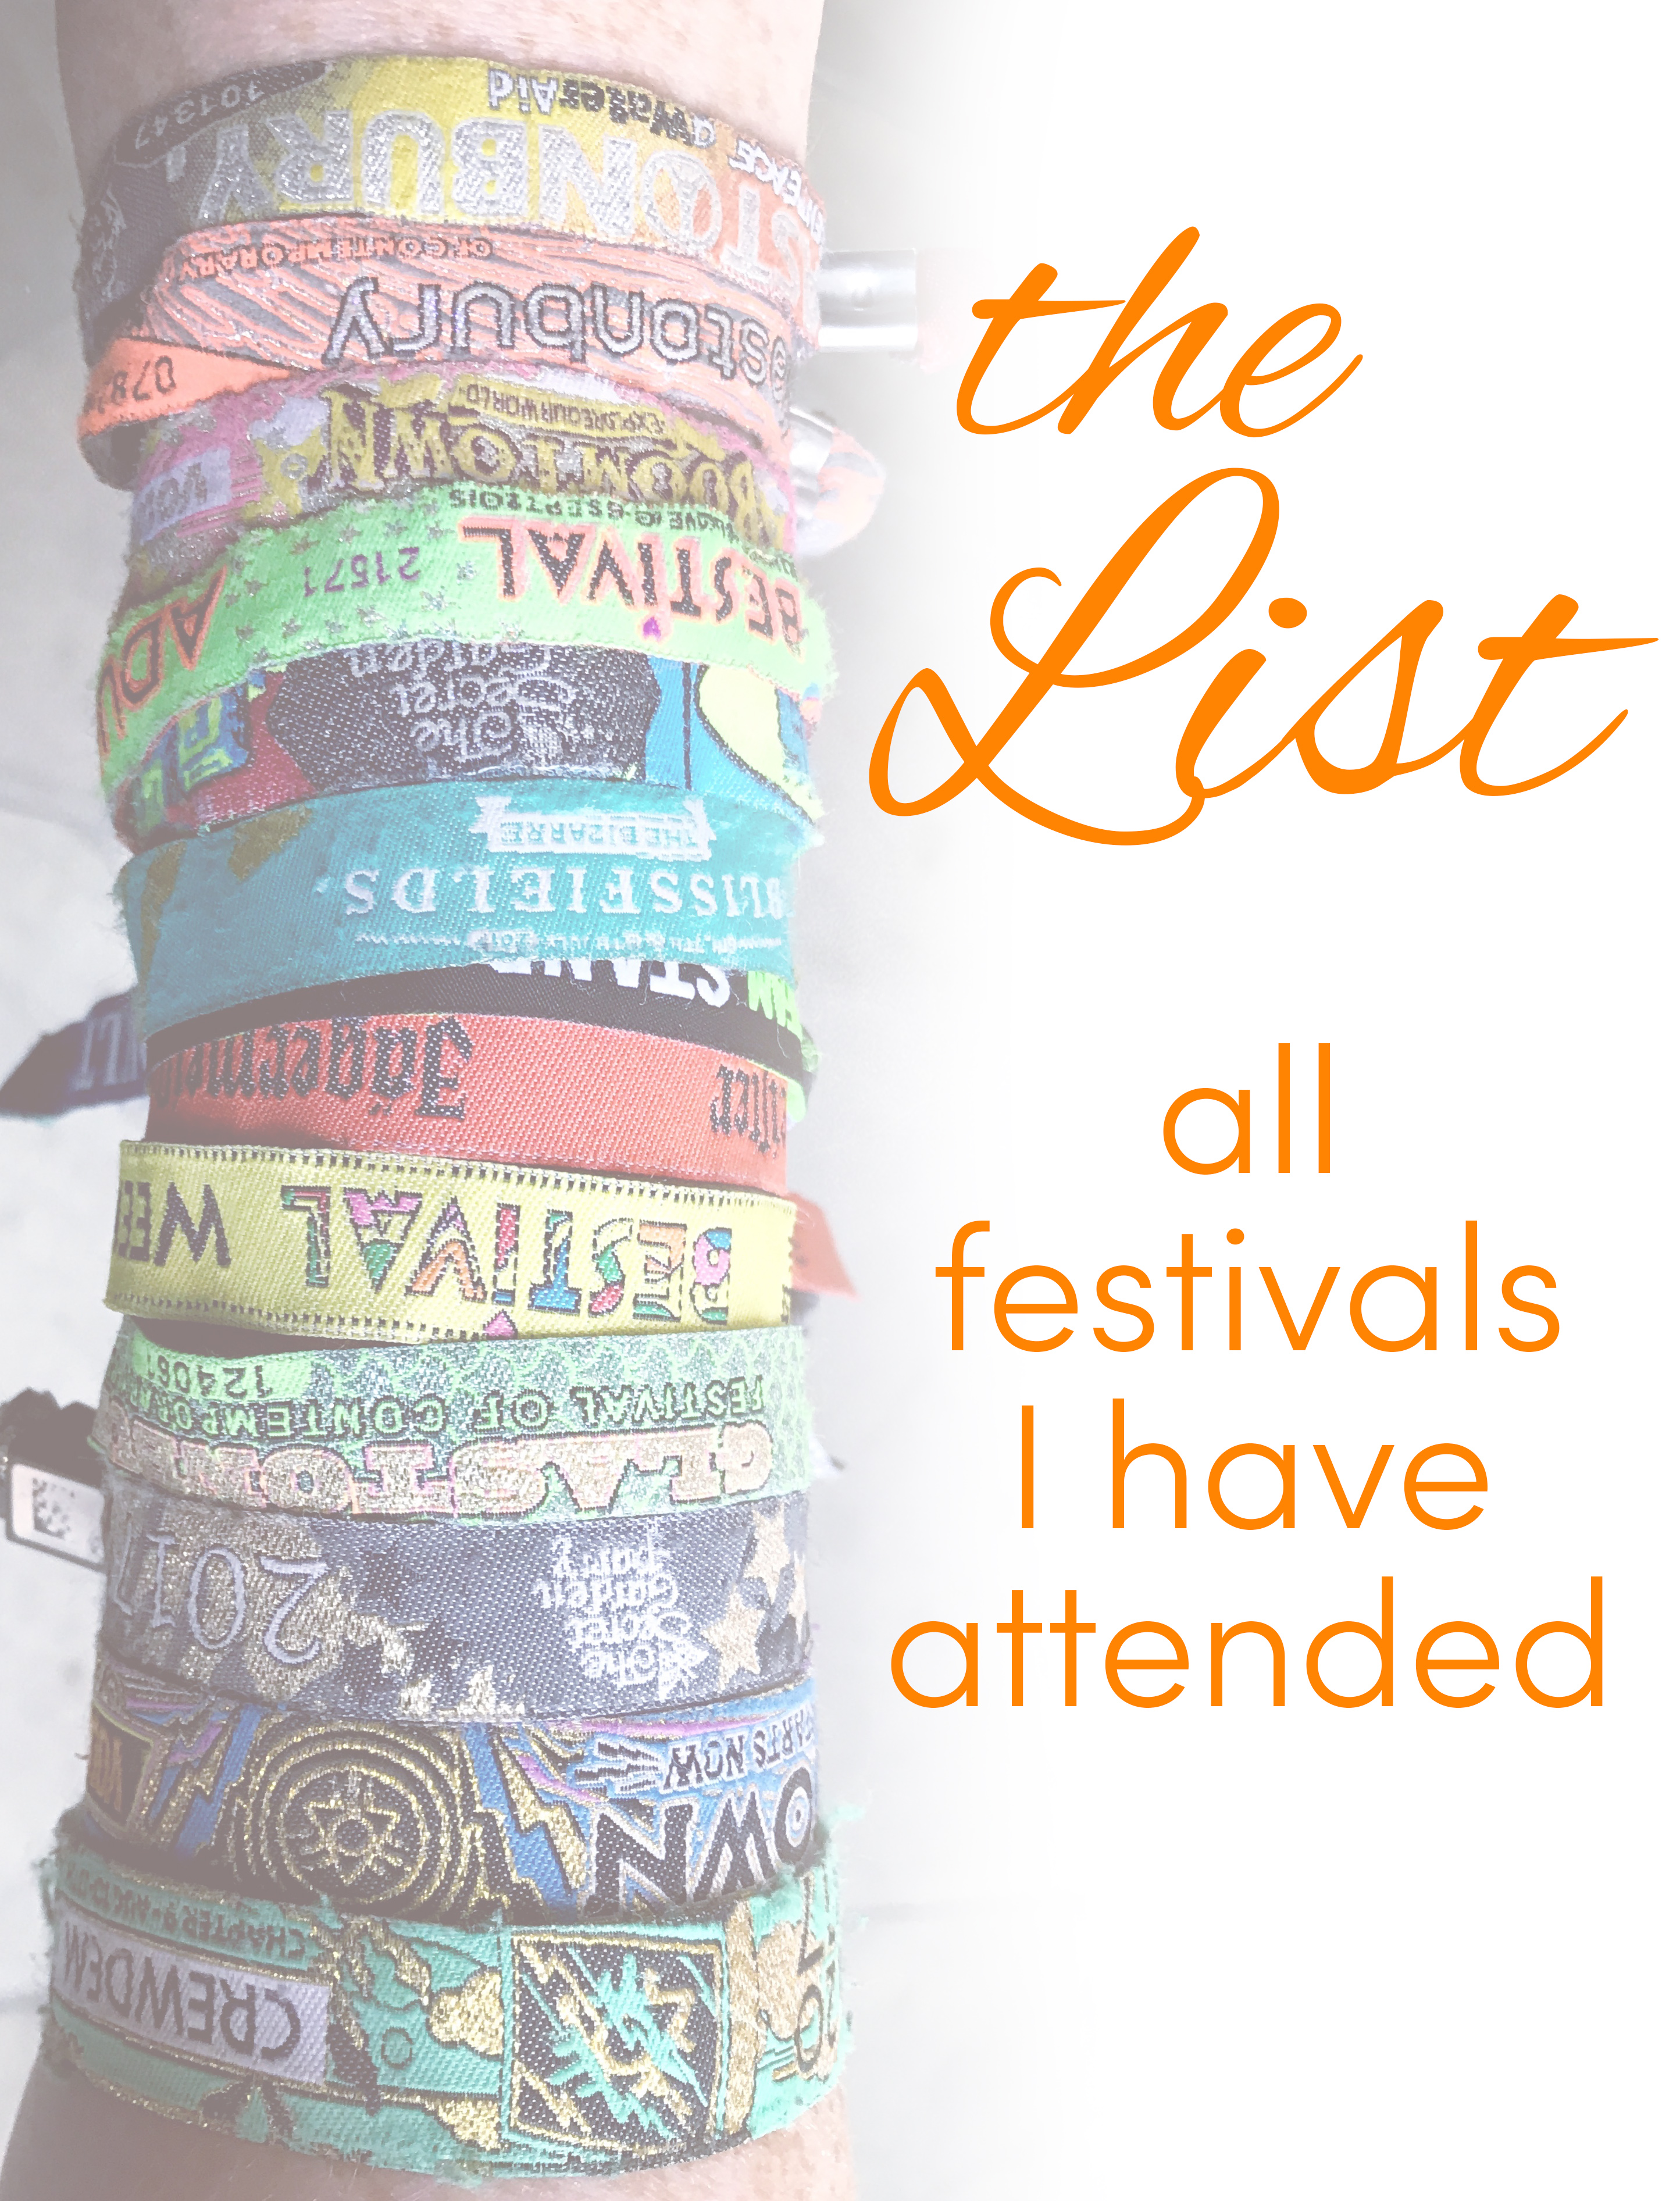 Pinterest share image - my arm covered in festival wristbands with blog title